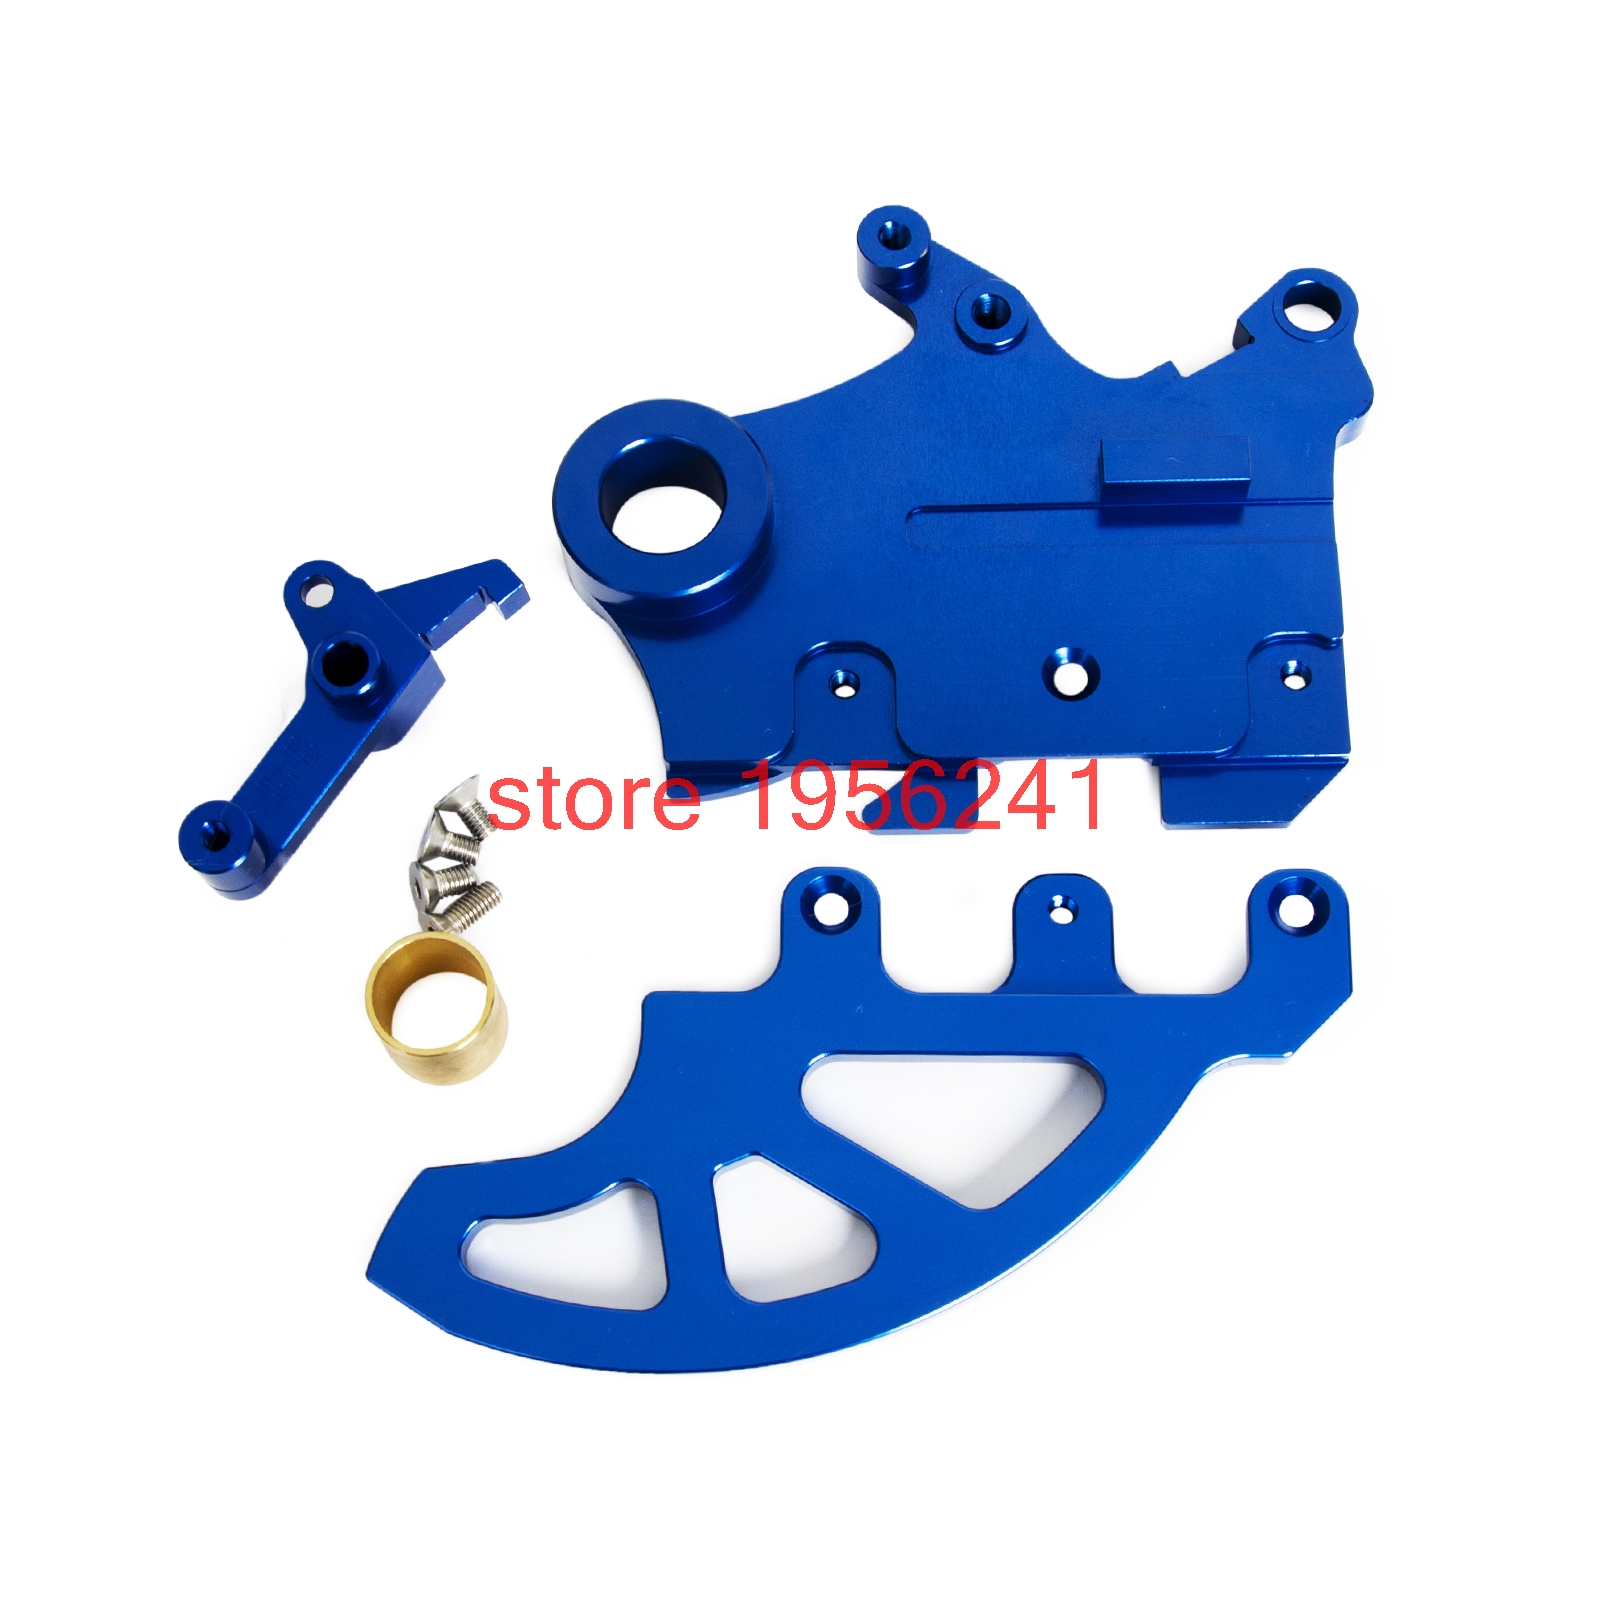 Motorcycle Brake Disc Guard Protector for Yamaha YZ125 YZ250 YZ250F YZ450F YZ250X YZ450X YZ250FX YZ450FX WR250 WR450 fxcnc universal stunt clutch easy pull cable system motorcycles motocross for yamaha yz250 125 yz80 yz450fx wr250f wr426f wr450